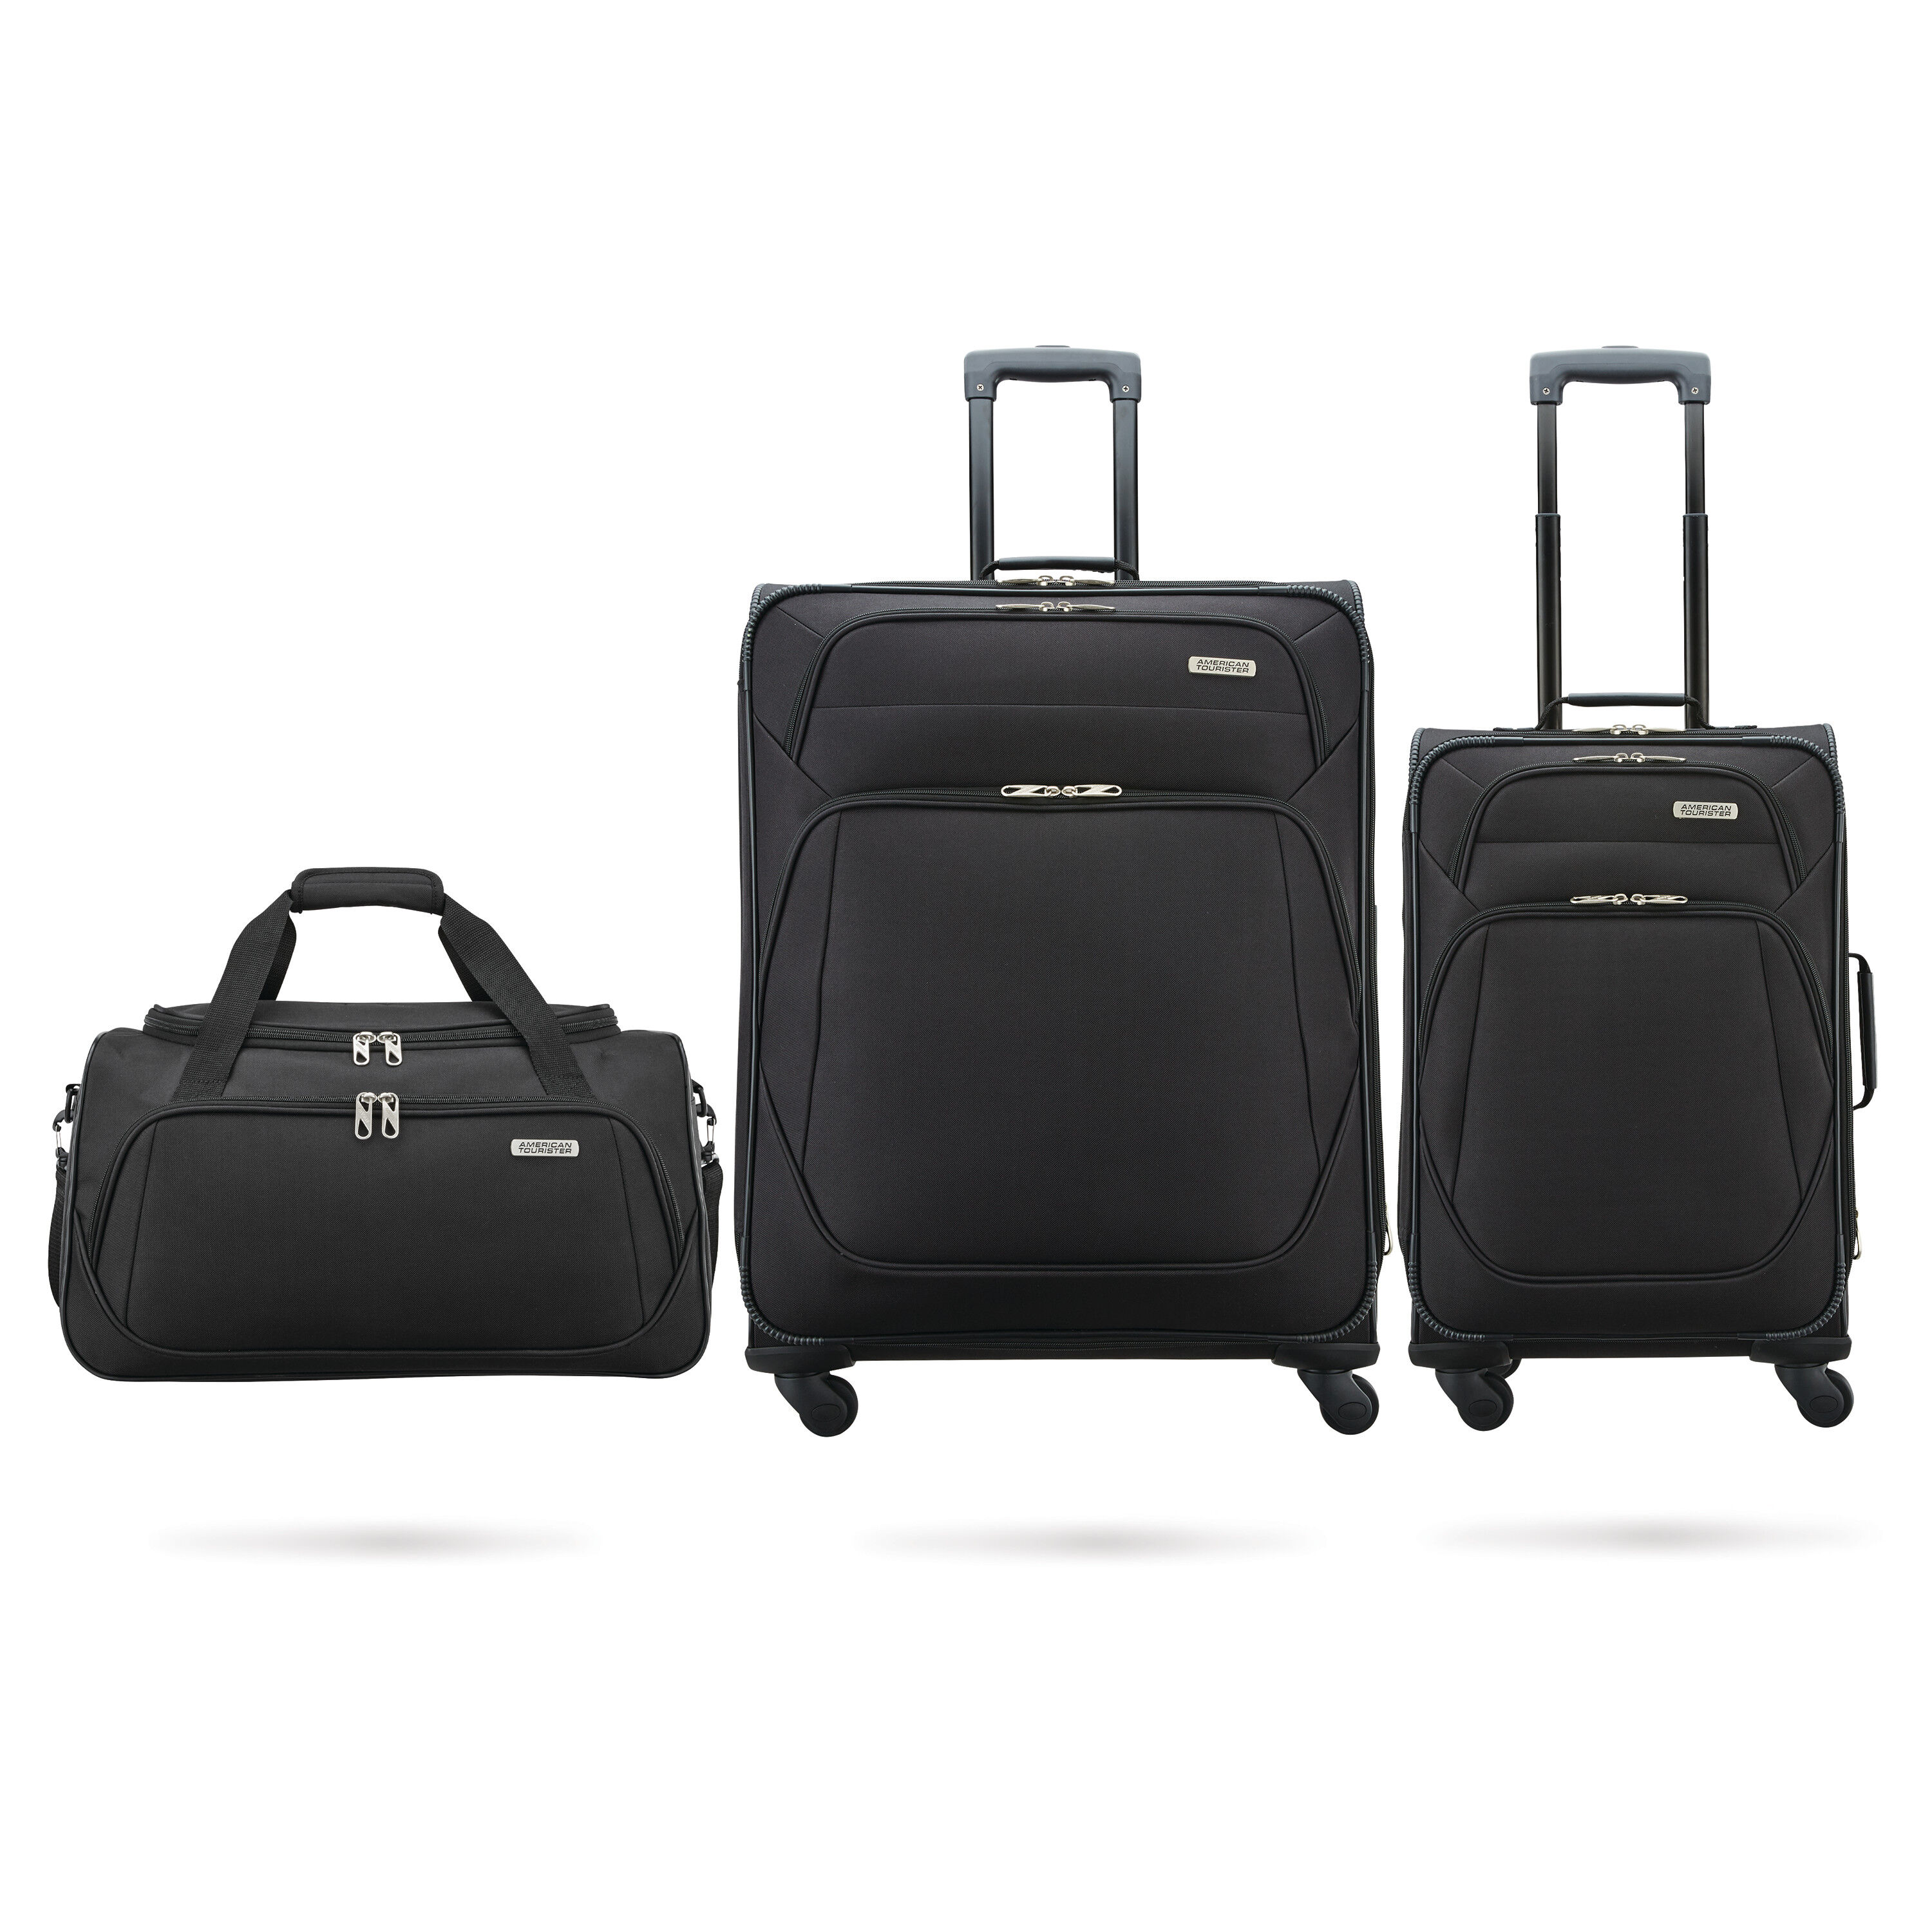 3-Piece American Tourister Stack-It Luggage Set